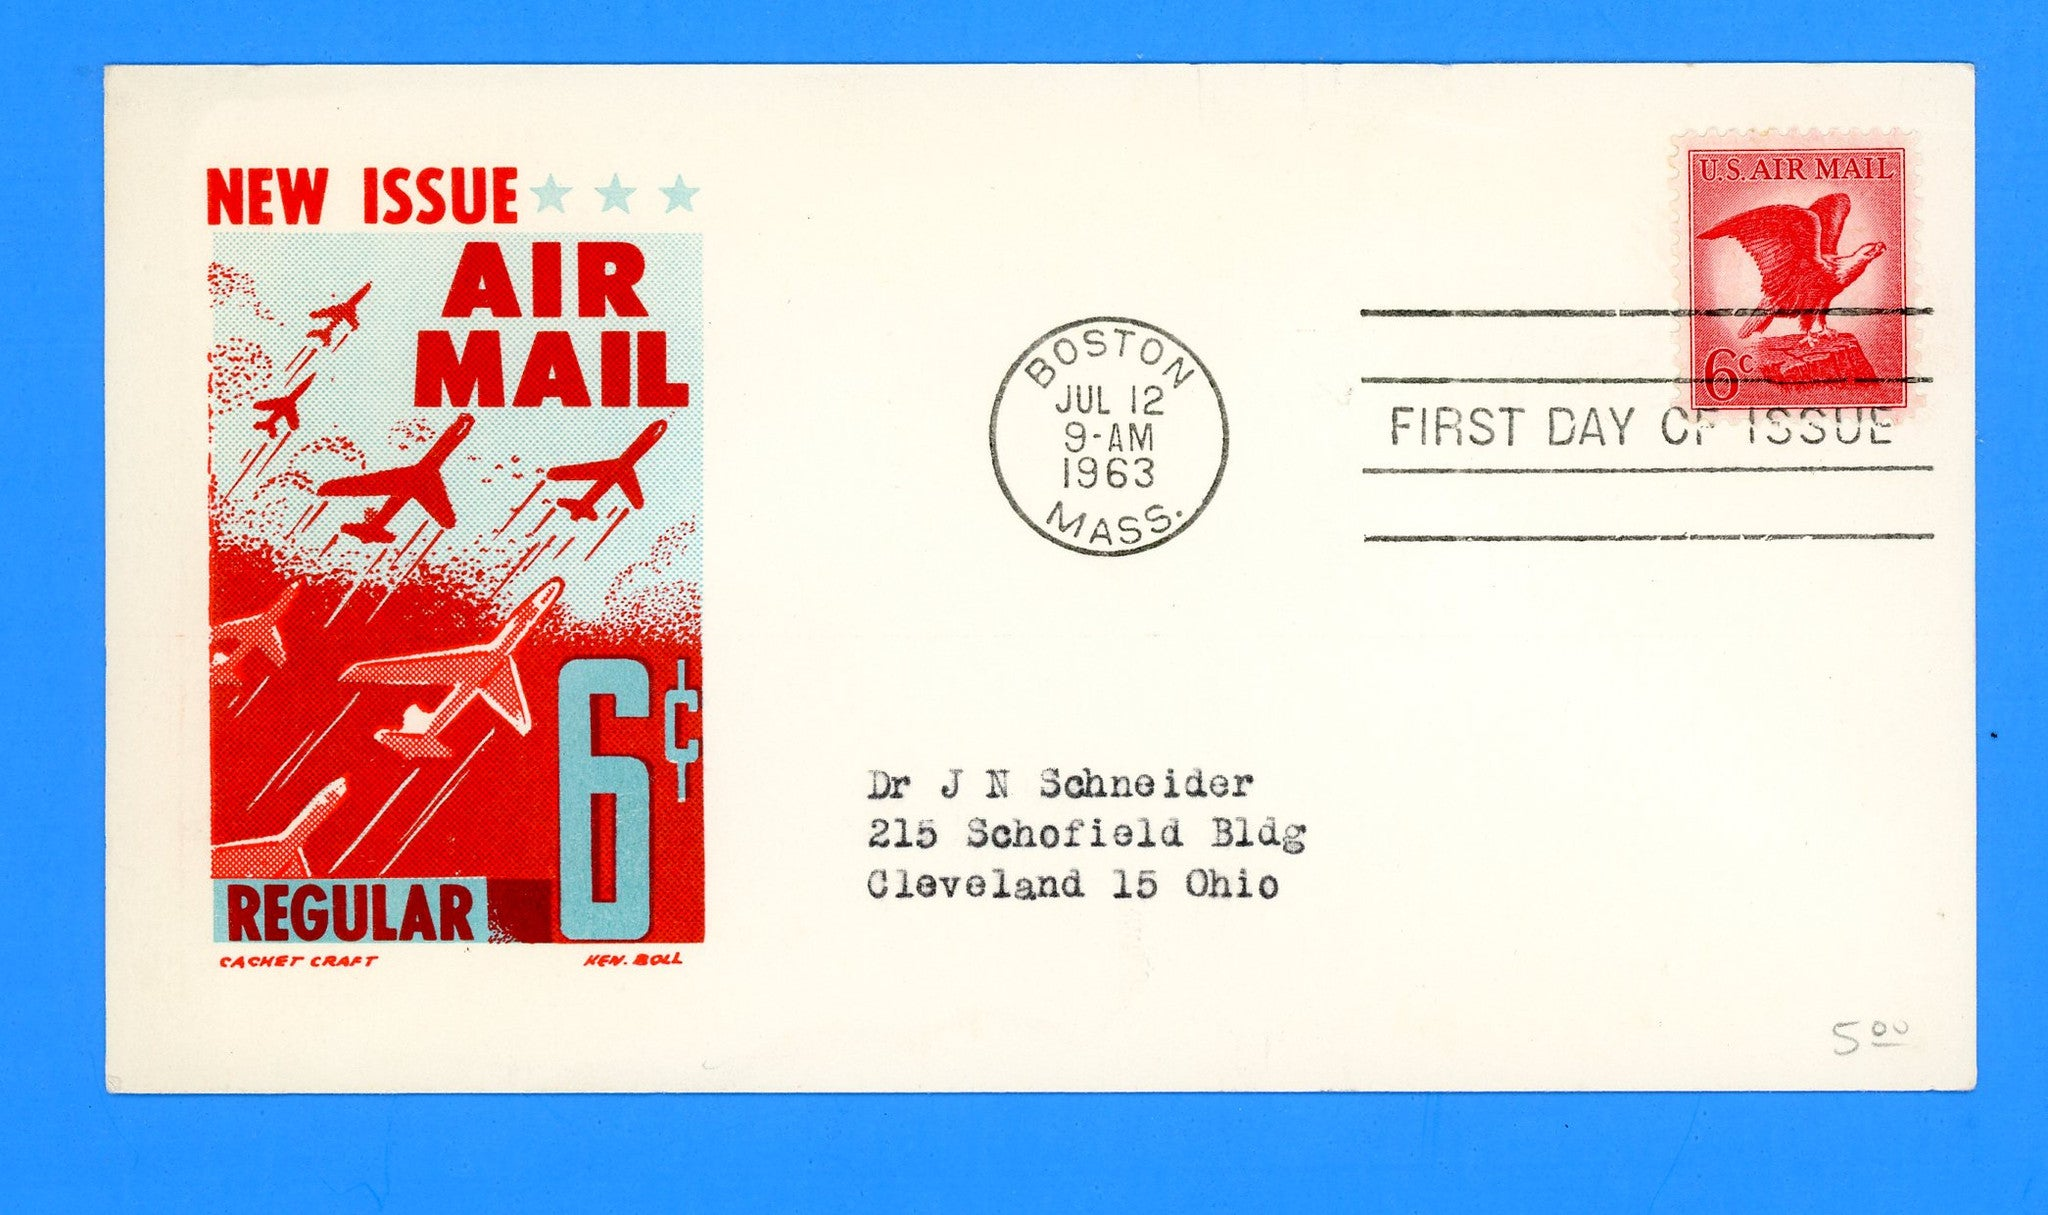 Scott C67 6c Air Mail Eagle First Day Cover by Cachet Craft/Boll on Card